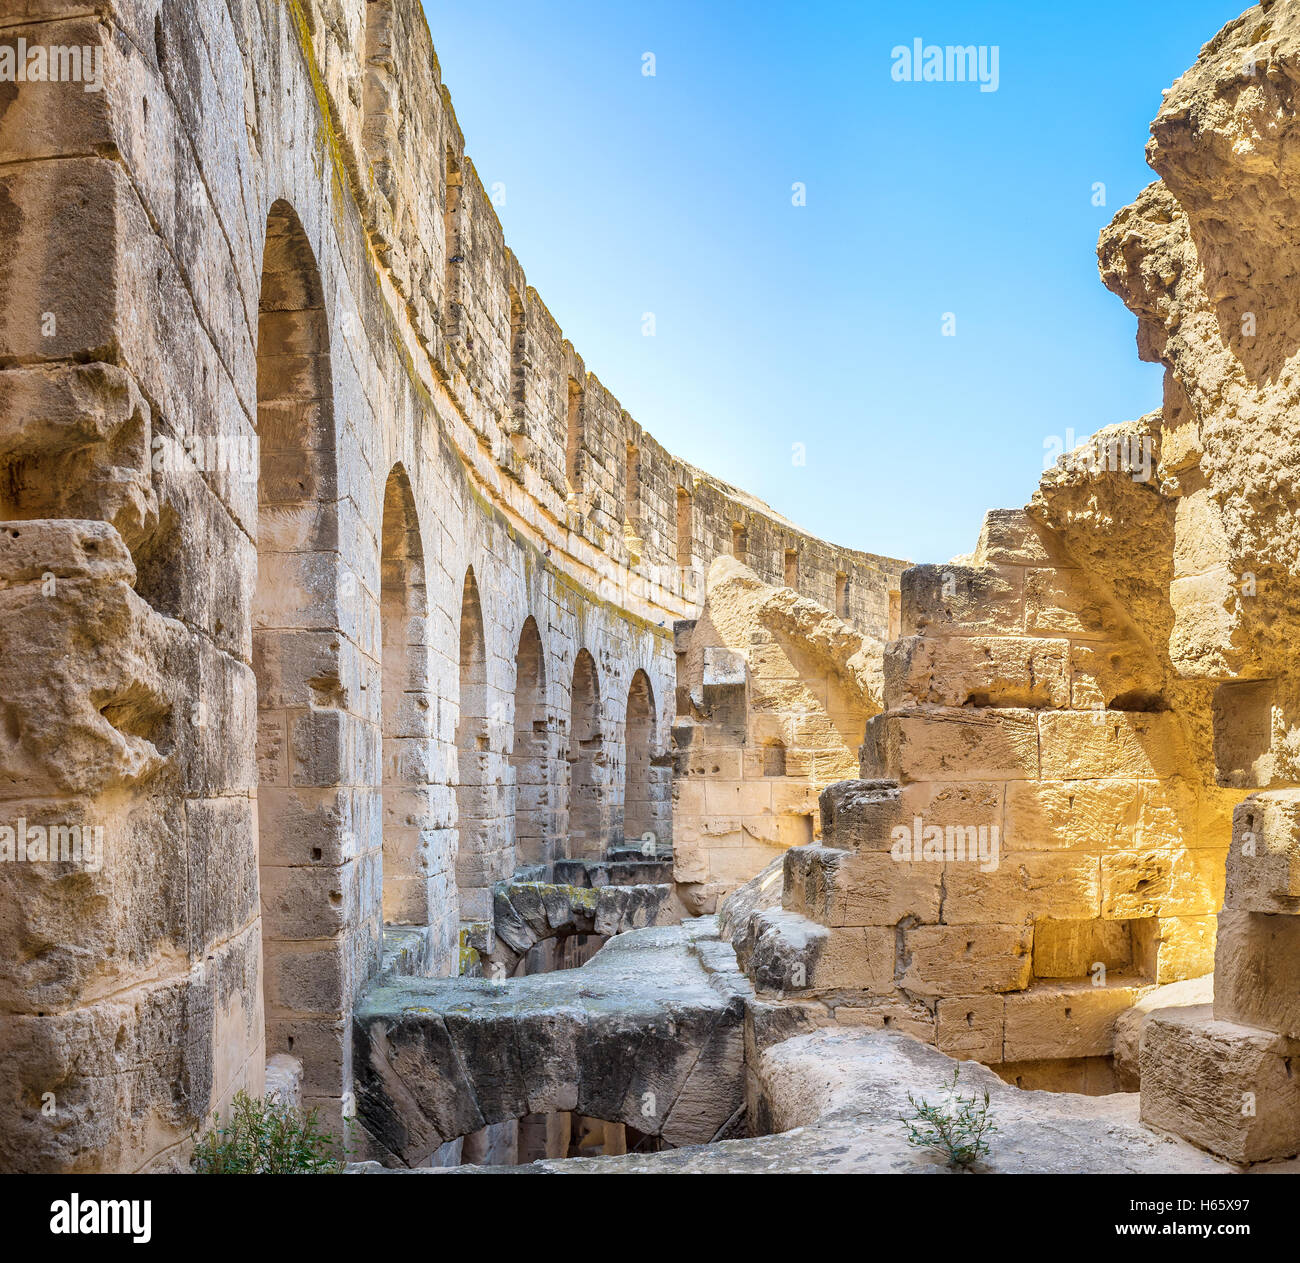 Some of constructions in the old Roman amphitheatre were ruined, but the main wall is in good condition, El Jem - Stock Image